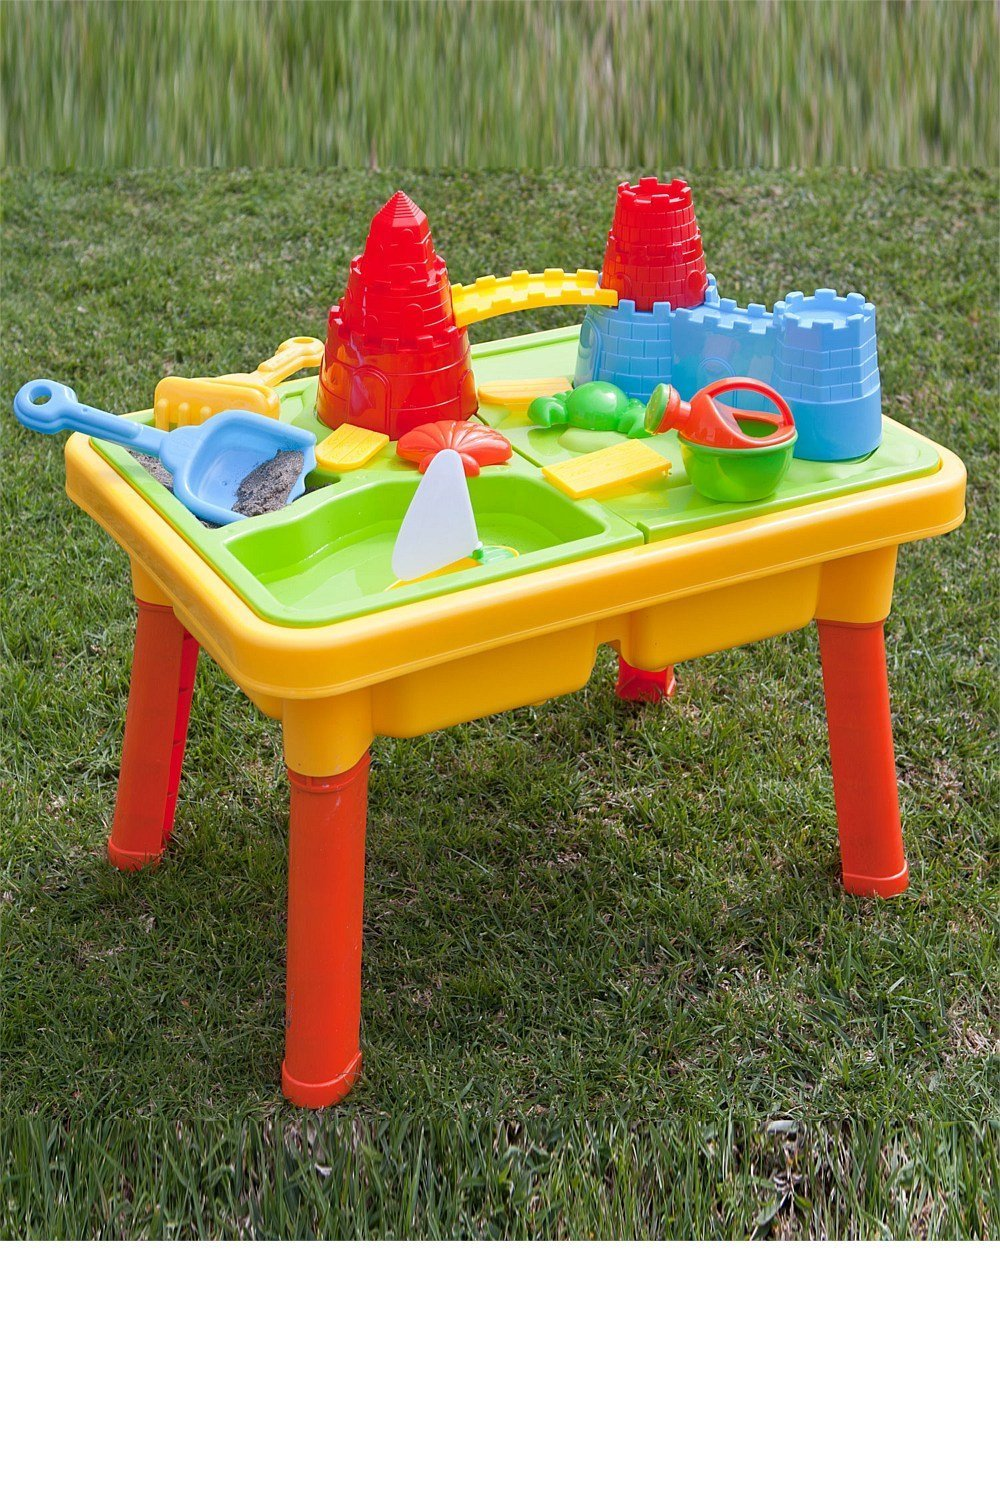 CHIMAERA Multi-Play 2-in-1 Sandbox / Sand and Water Table with Beach Playset by CHIMAERA (Image #4)